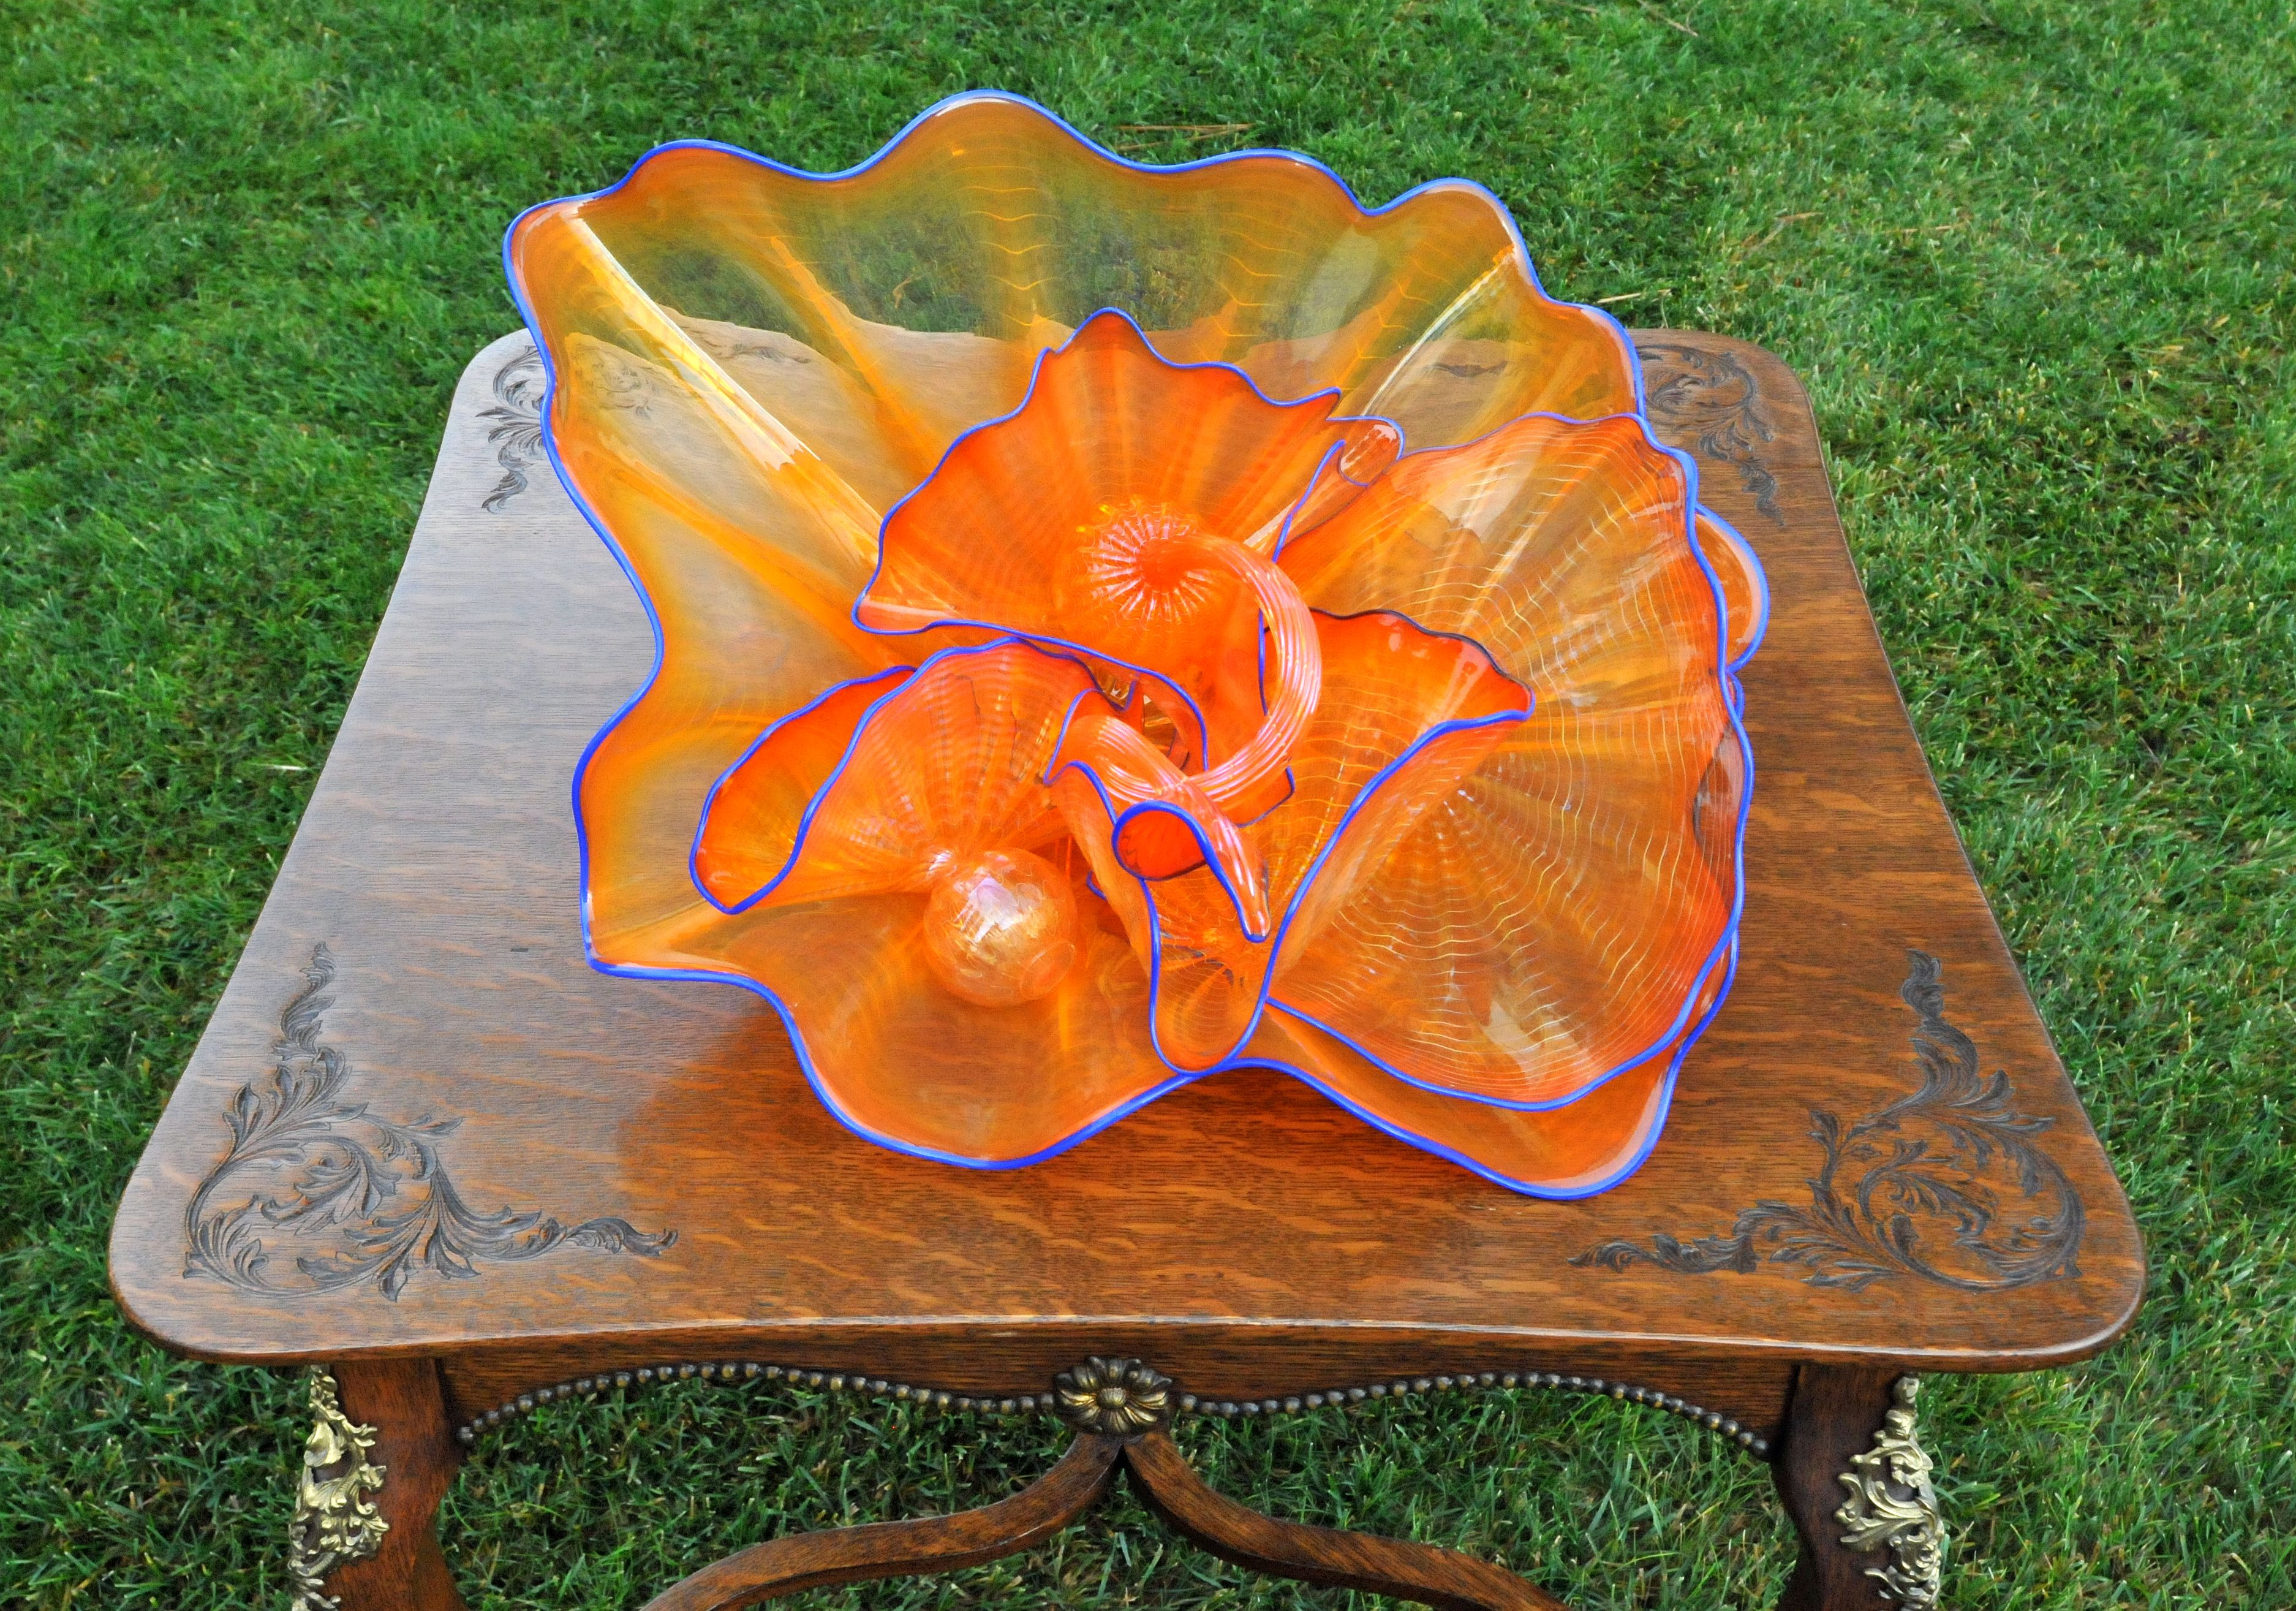 Seashell Orange 6 pc Persian Set with Indigo Lip Wraps Glass Sculpture 2002